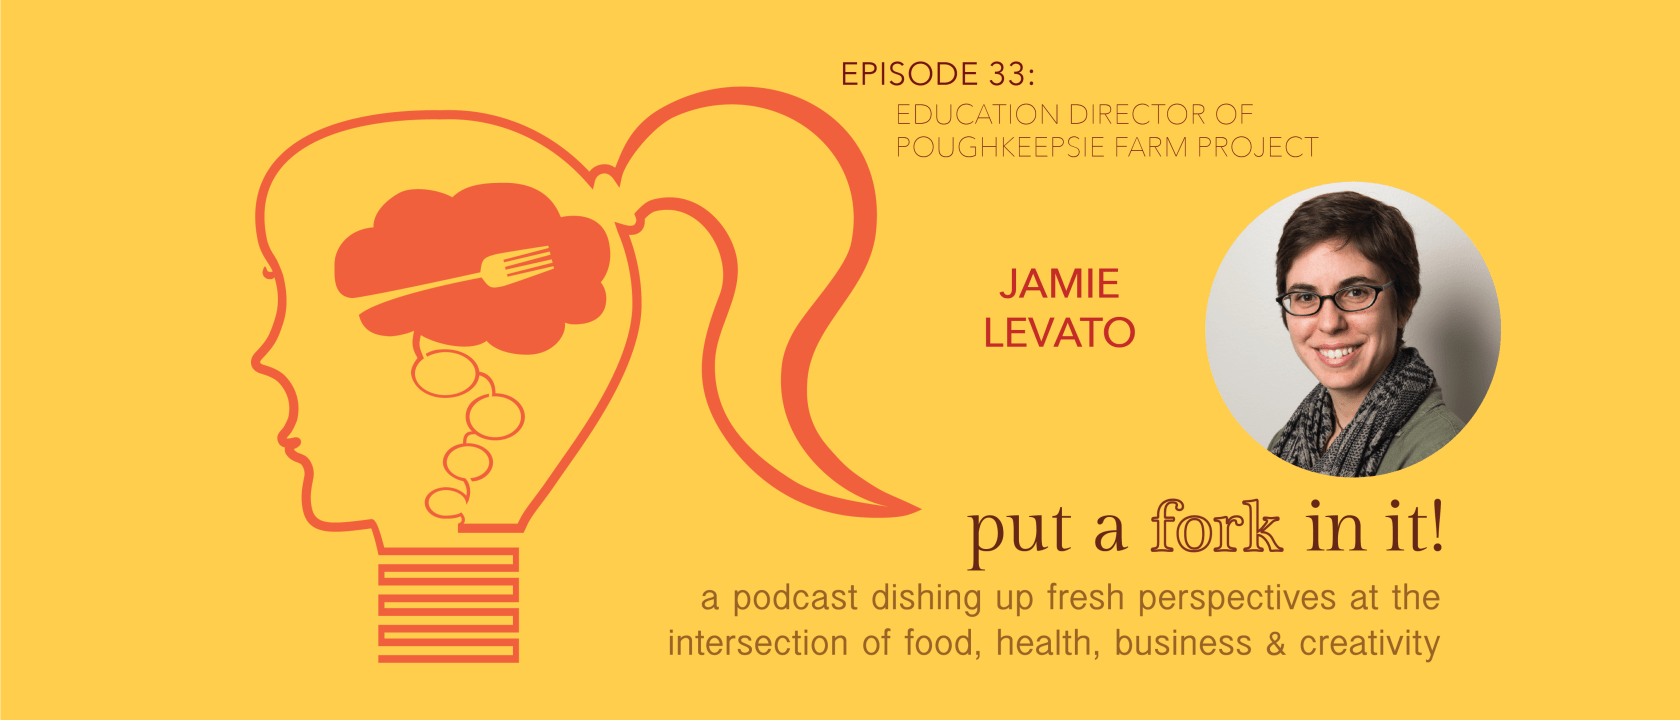 Jamie Levato of Poughkeepsie Farm Project featured on Put a Fork In It Podcast